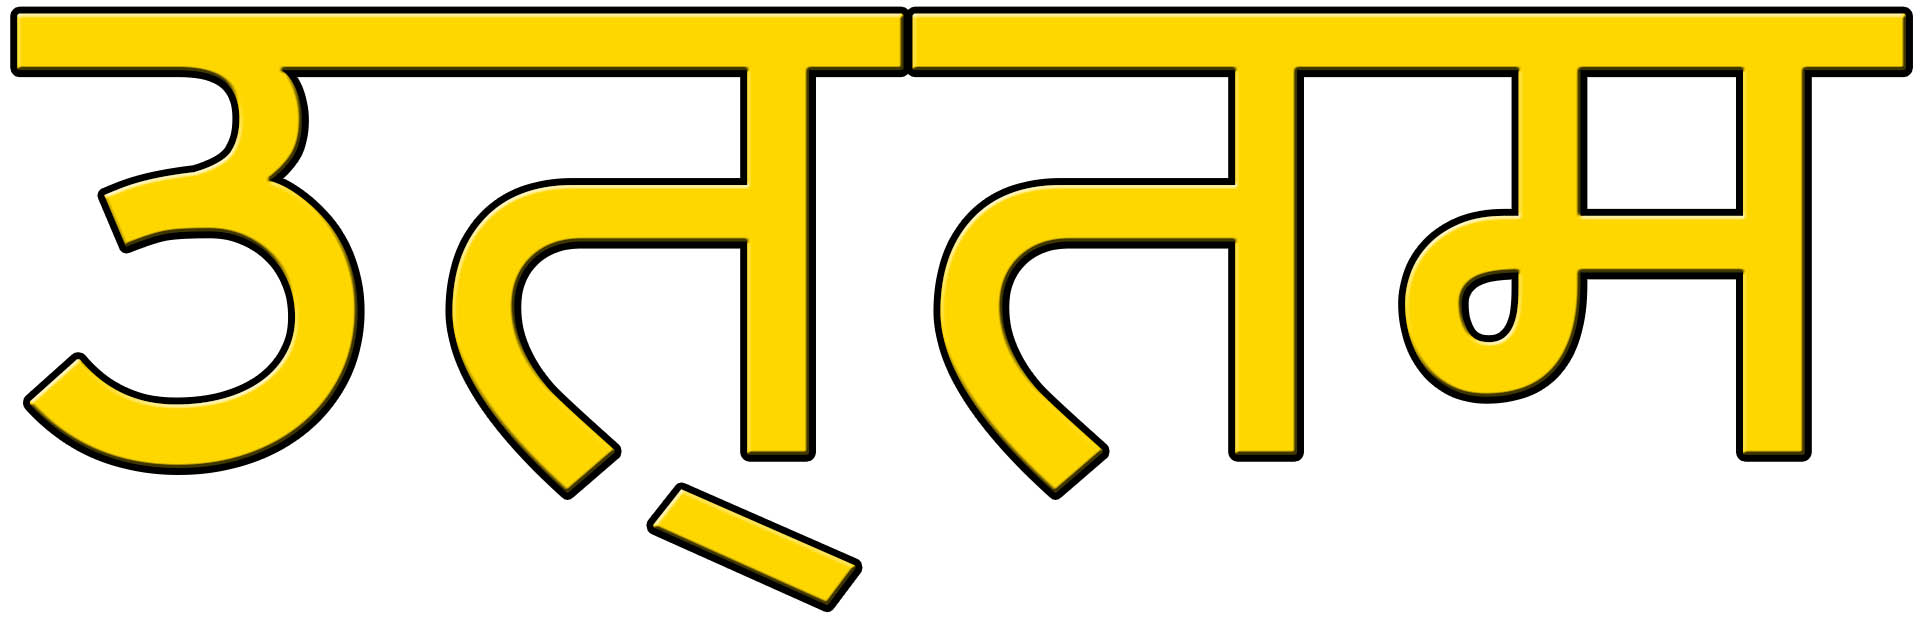 PERFECT in Hindi